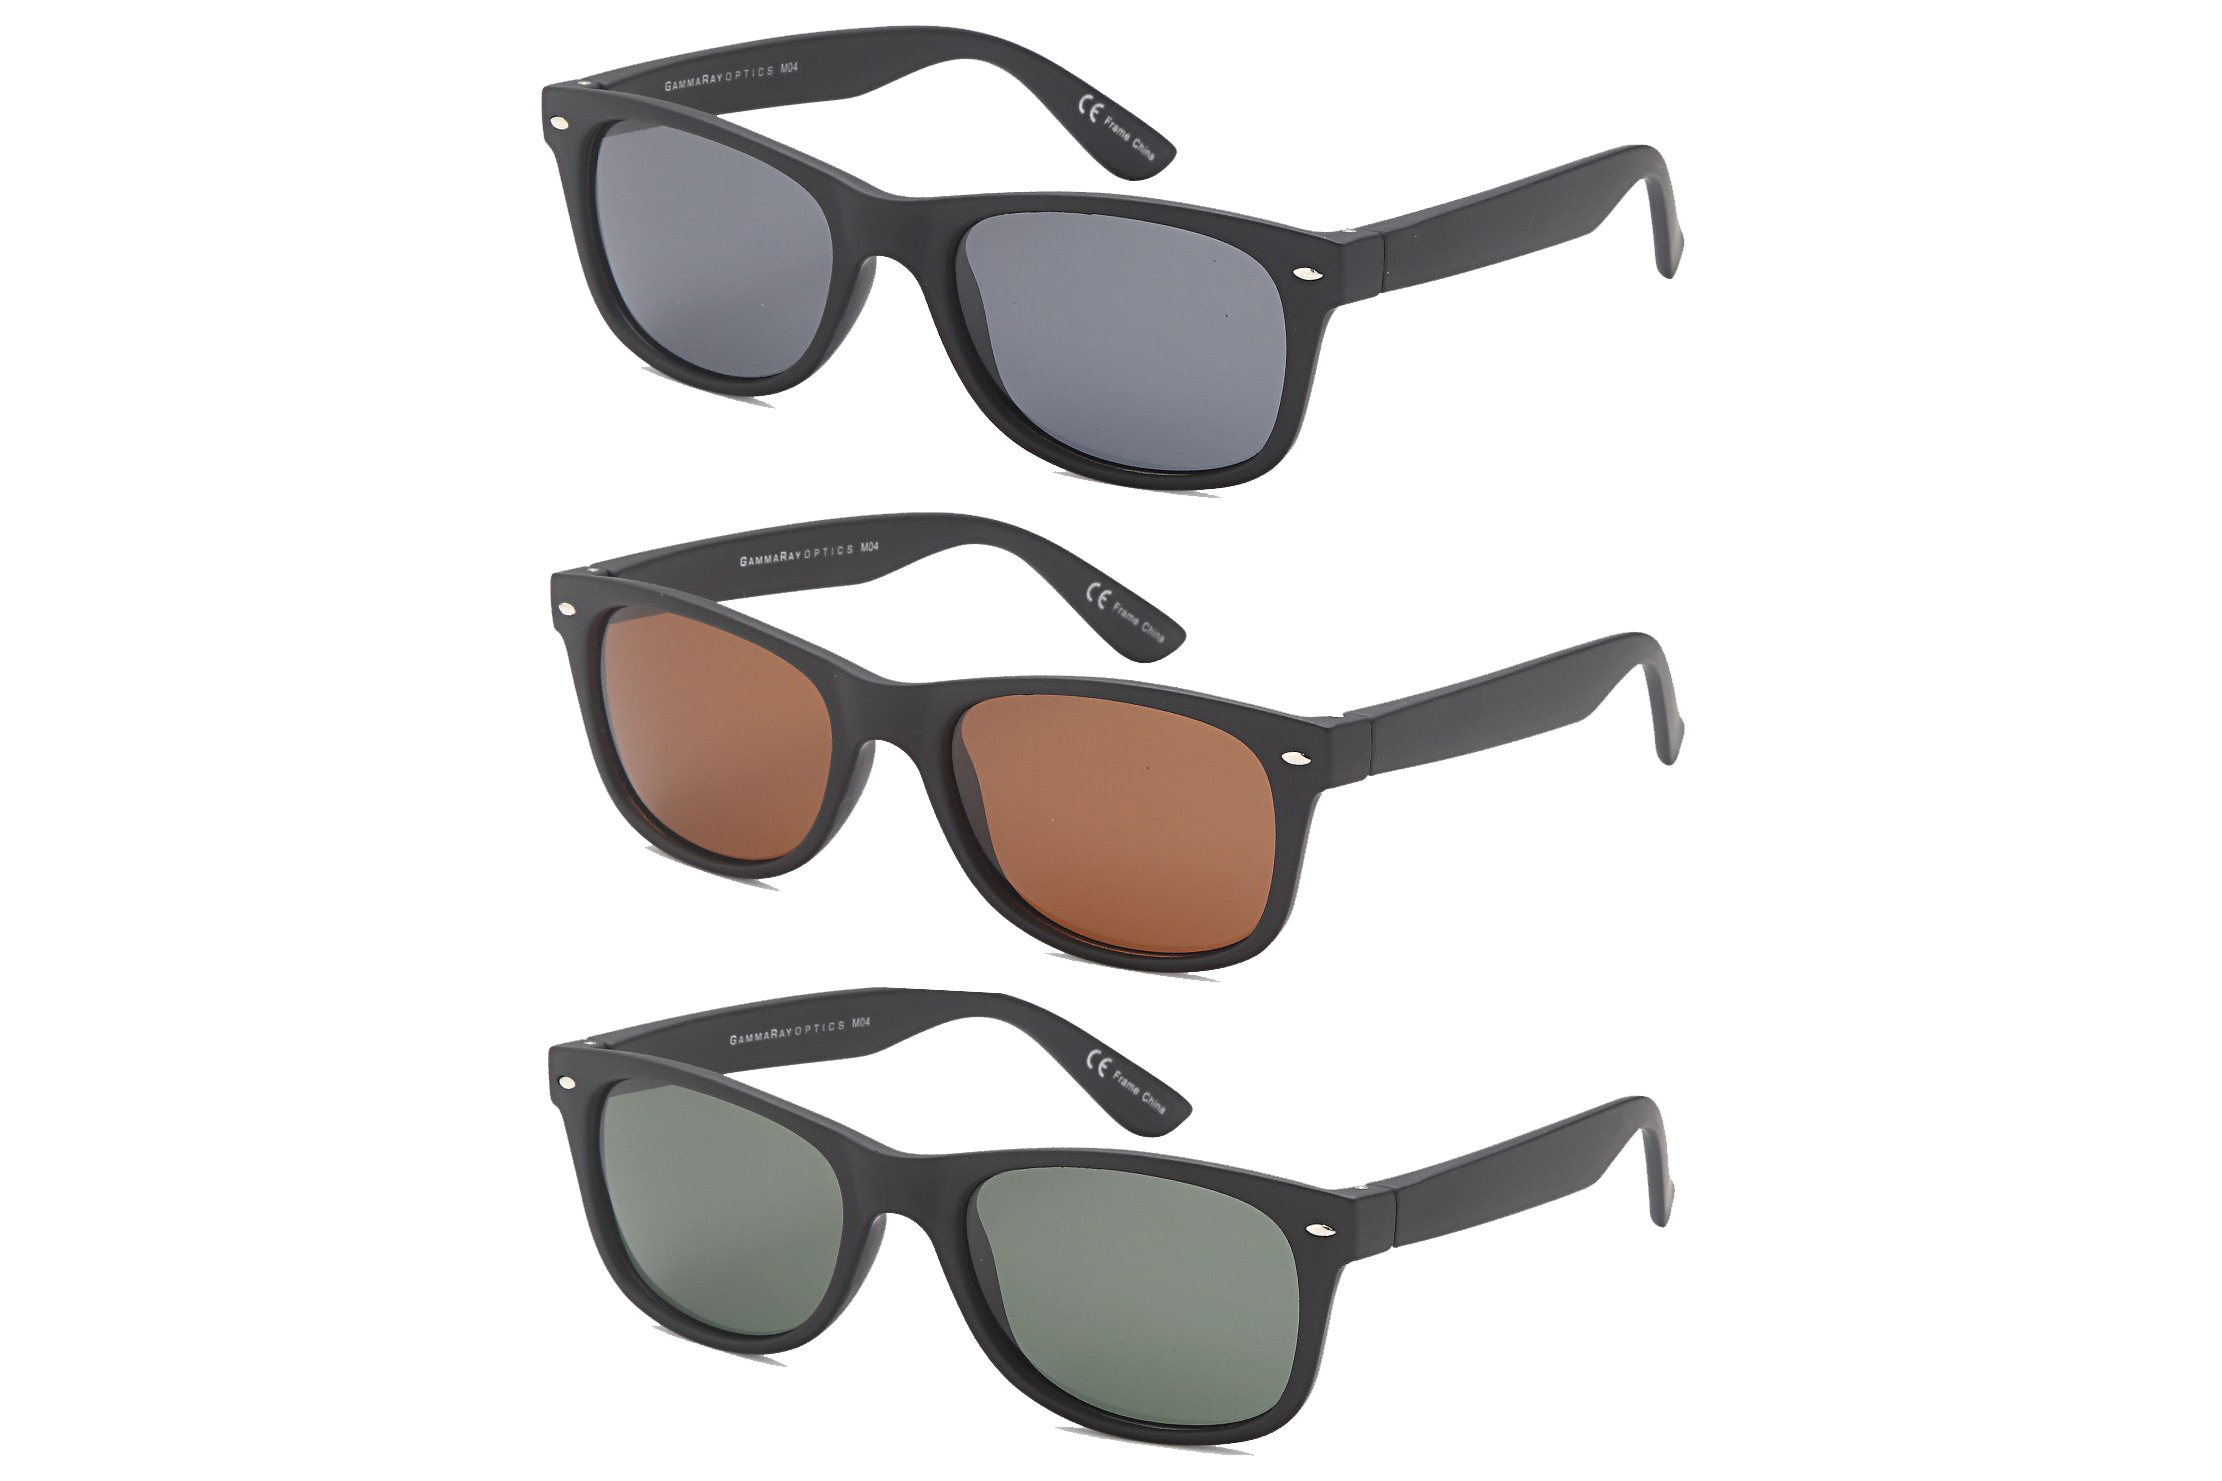 Gamma Ray Polarized Sunglasses – 3 Pairs